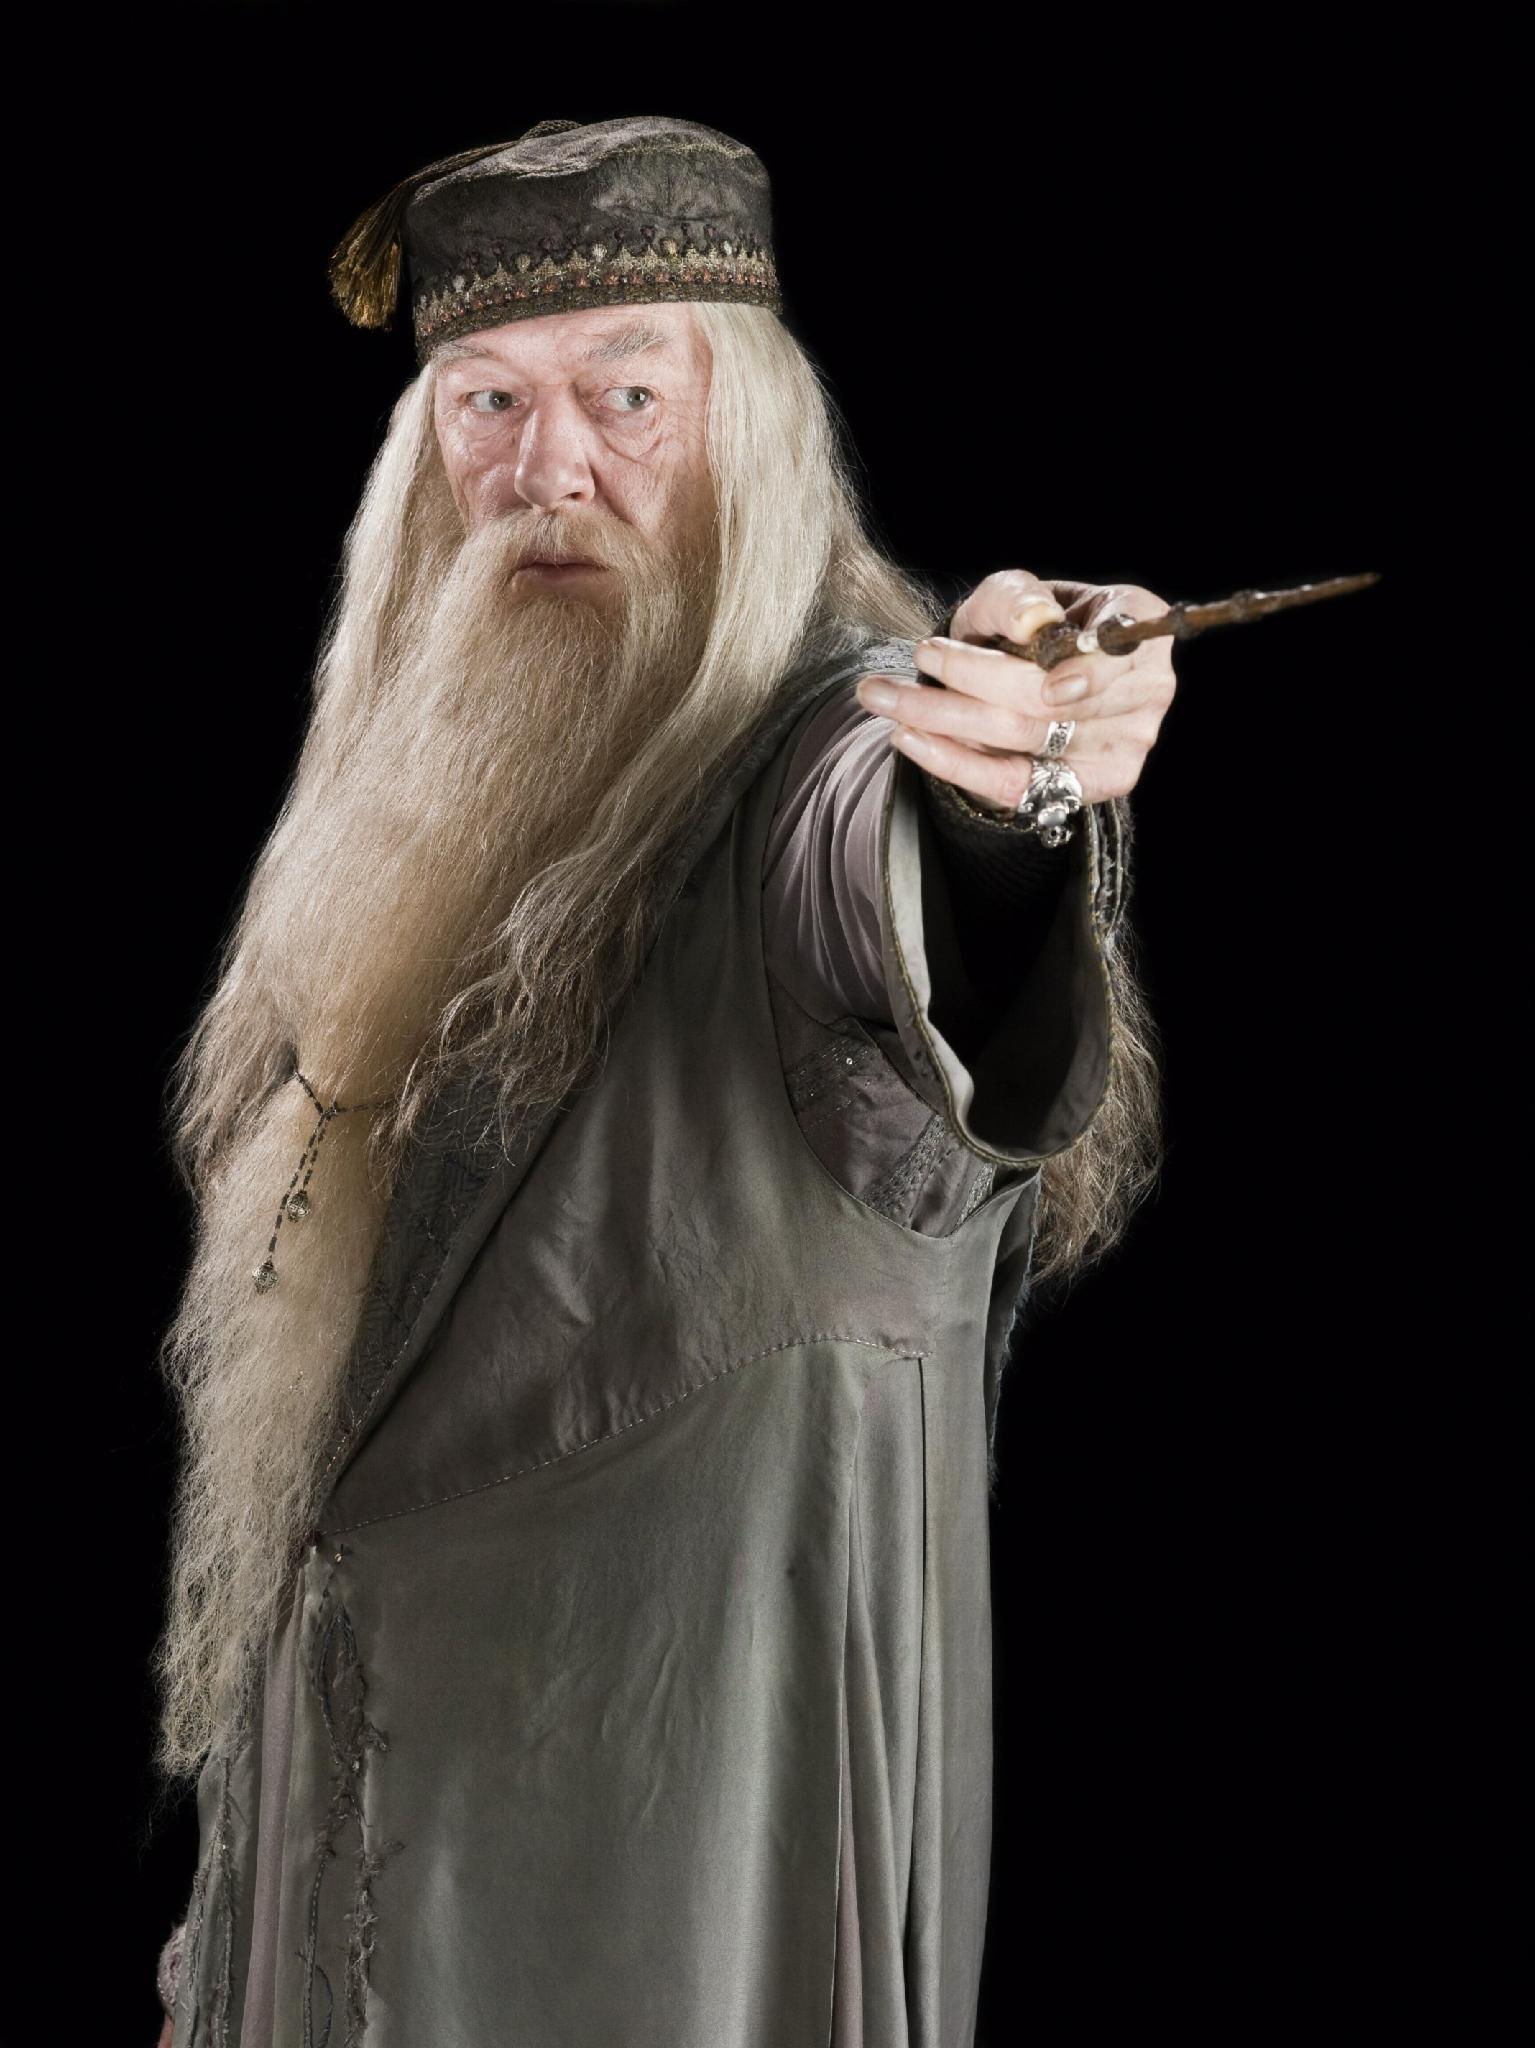 In the 6th book/movie who kills Dumbledore?